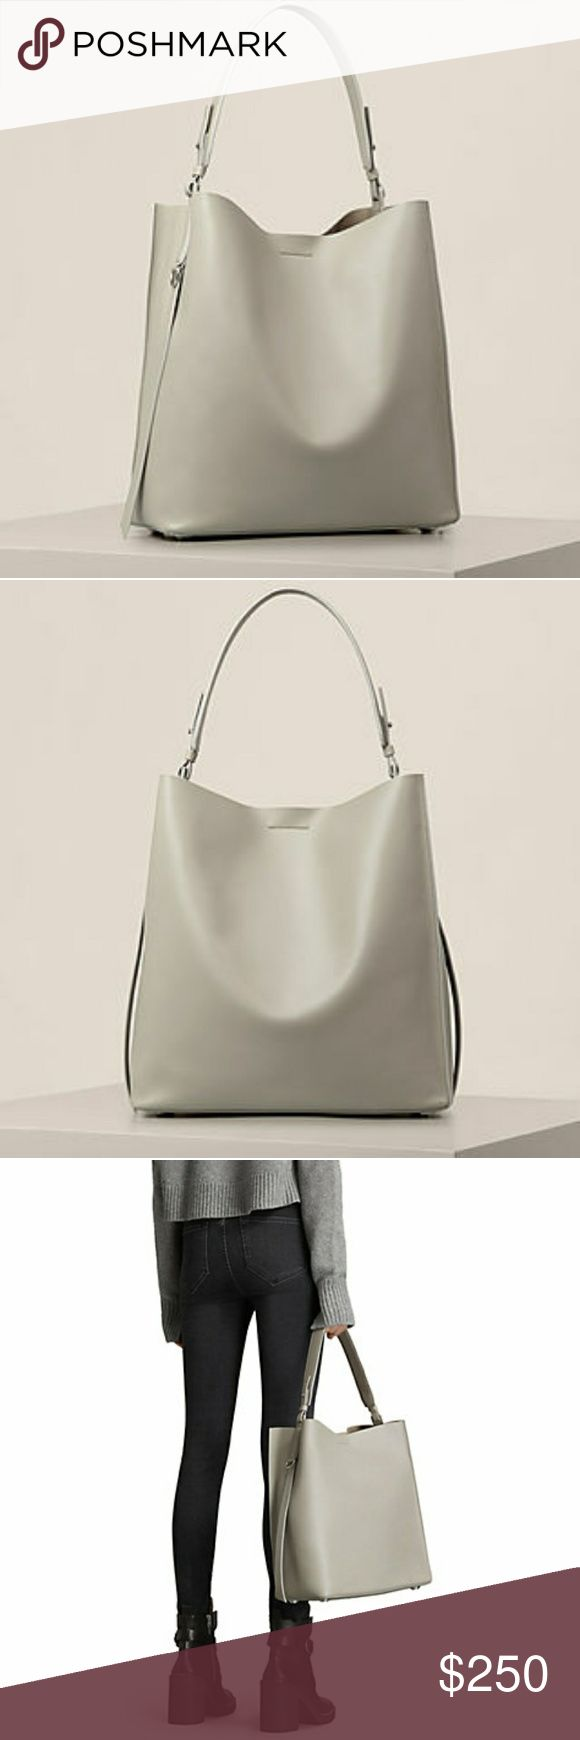 ALLSAINTS Paradise North South Tote -Color: light cement grey -Single top handle -Magnetic Closure -Zip Pouch  -Interior slip pocket -Structured base with 4 protective metal feet -Smooth leather finish -Comes with allsaints dust bag and original tags 36cm-H, 34cm-W, 14cm-D, 22cm-Handle drop If interested in black please message, pricing will differ. No trades. All Saints Bags